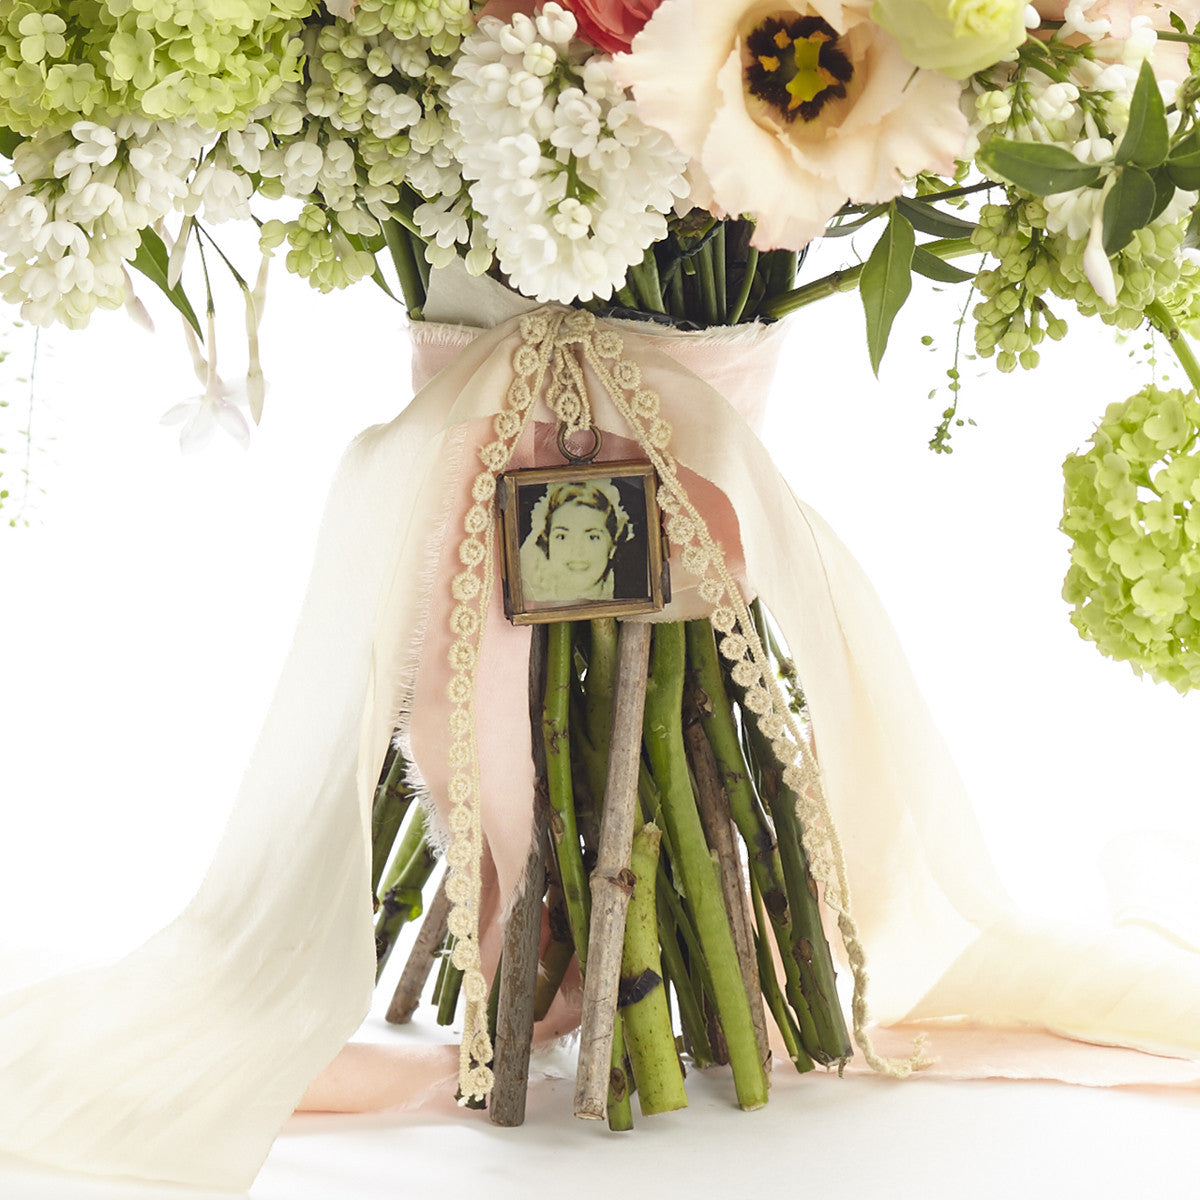 Tiny Photo Frame For Wedding Bouquet – The Wedding of My Dreams